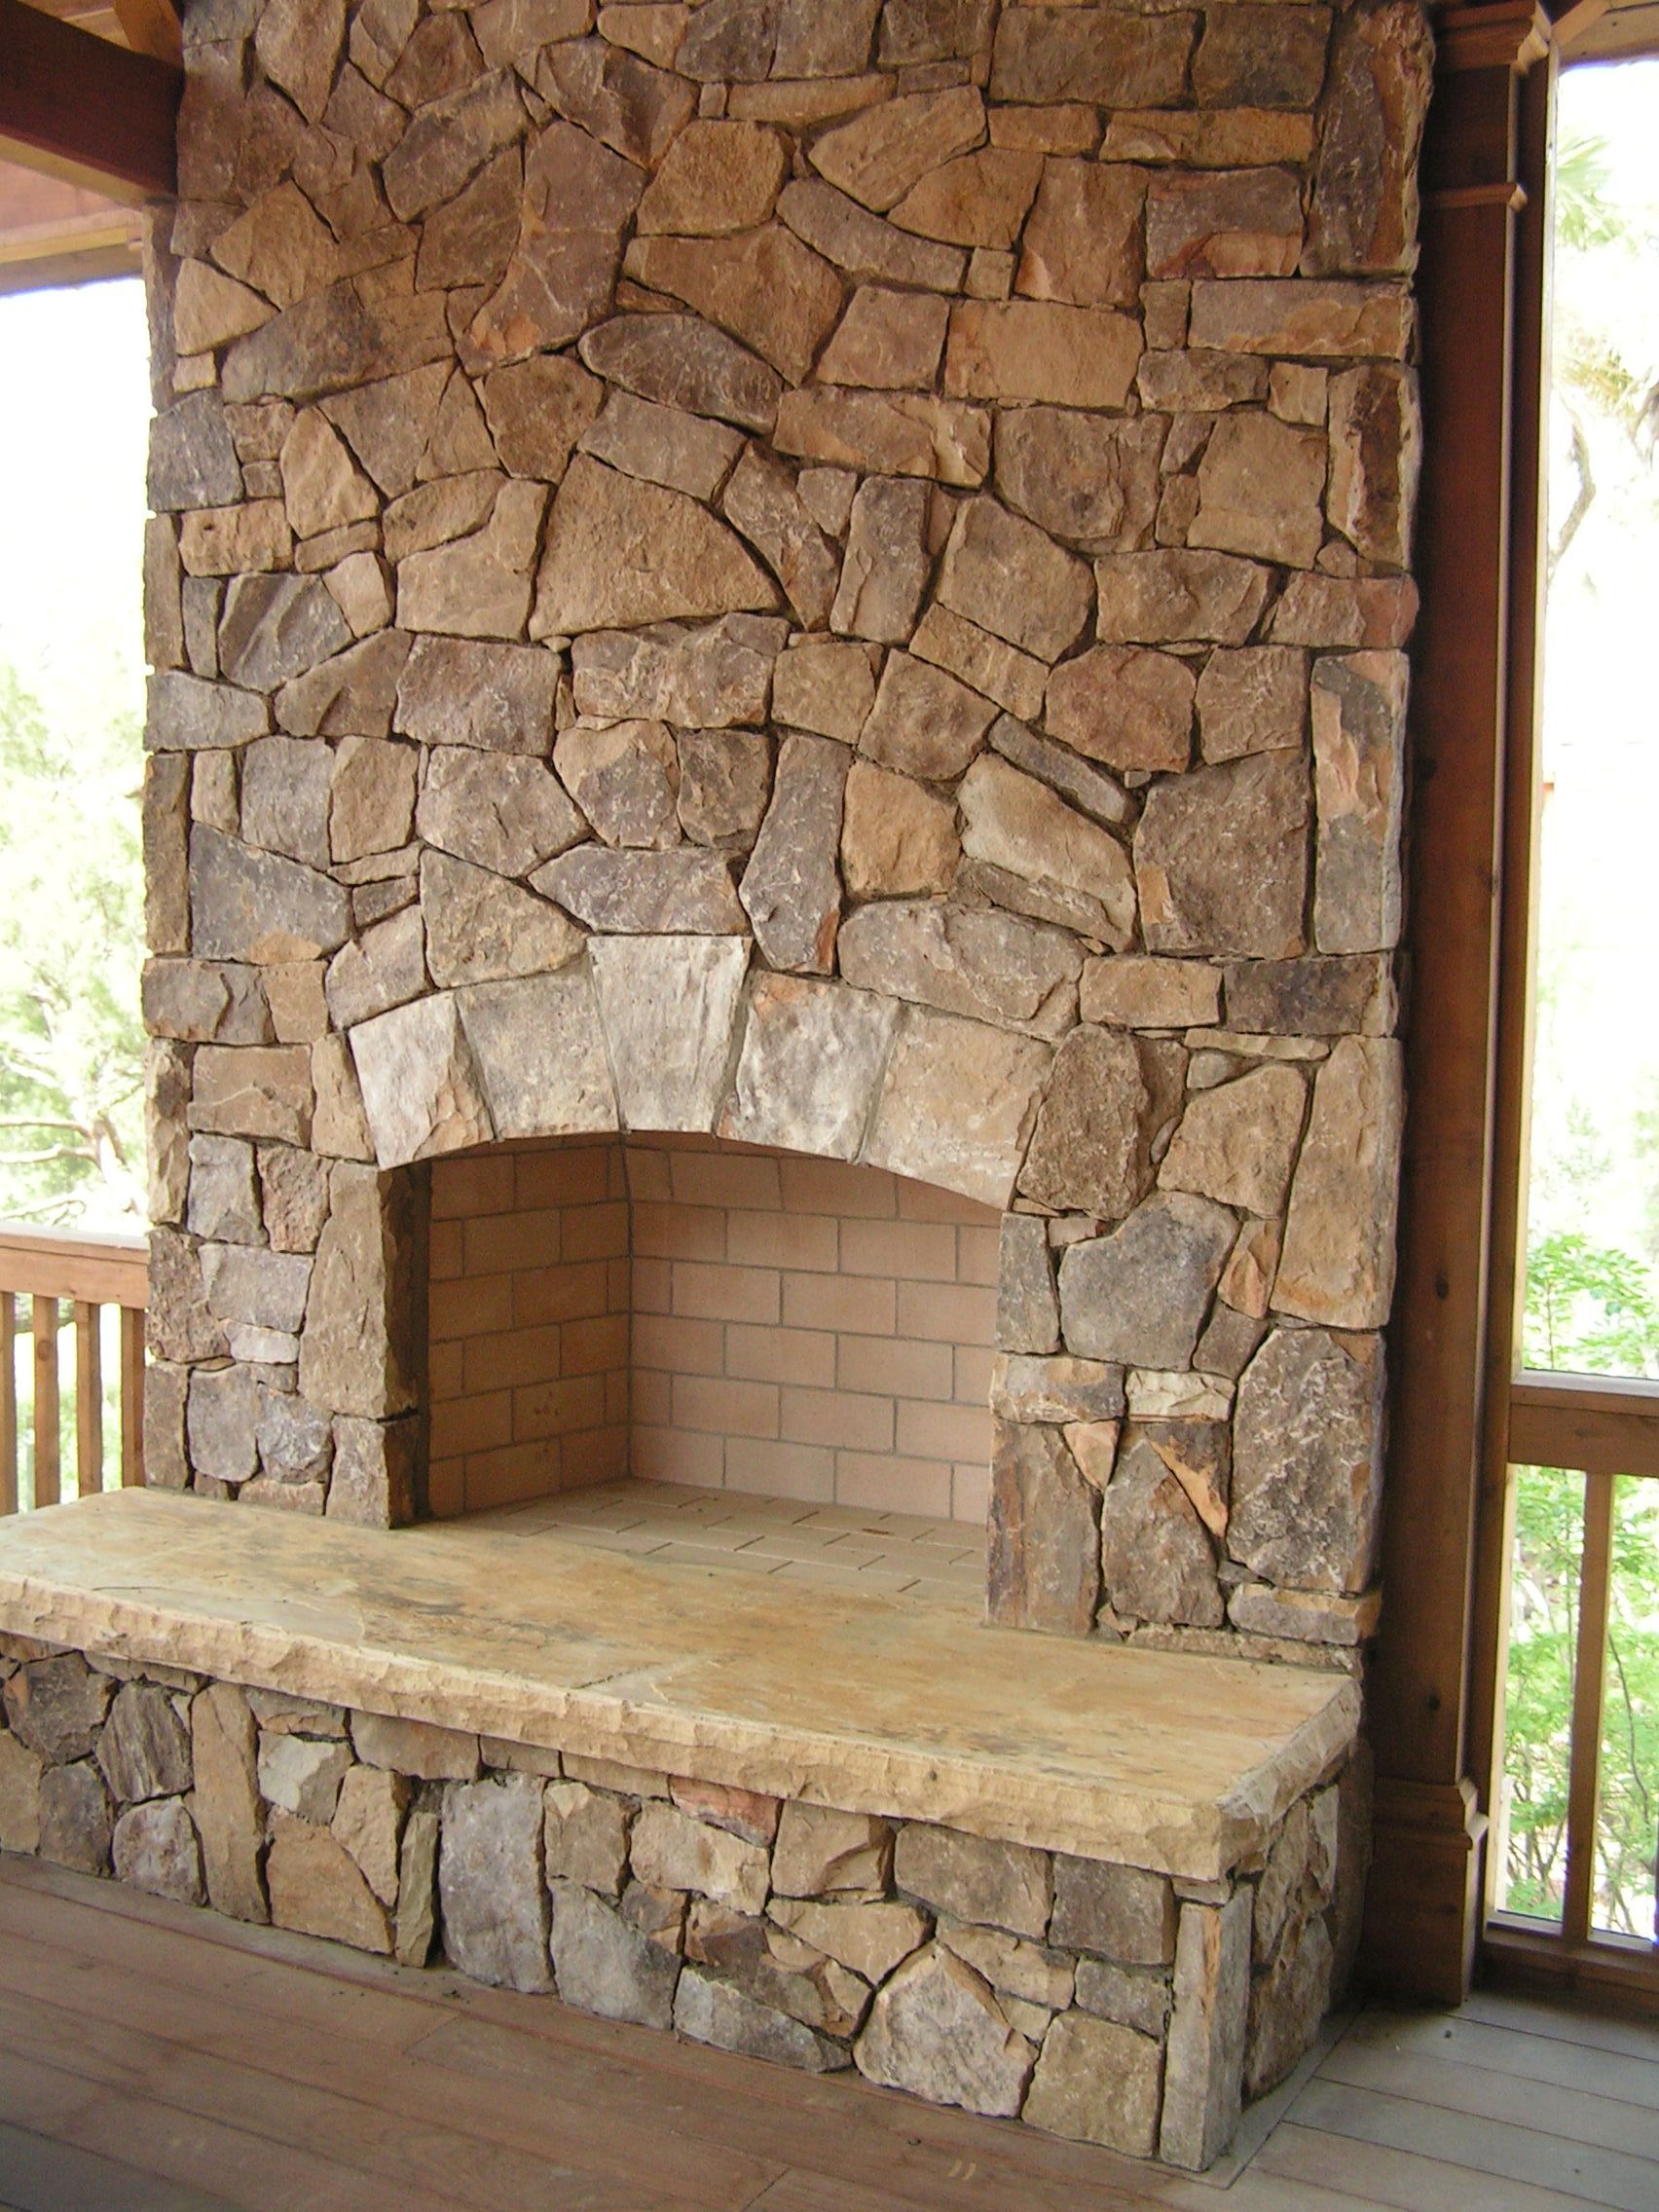 Eldorado Stone Cliffstone Montecito Home Design Ideas Pictures Remodel And Decor: Stone Fireplaces, Stone And House